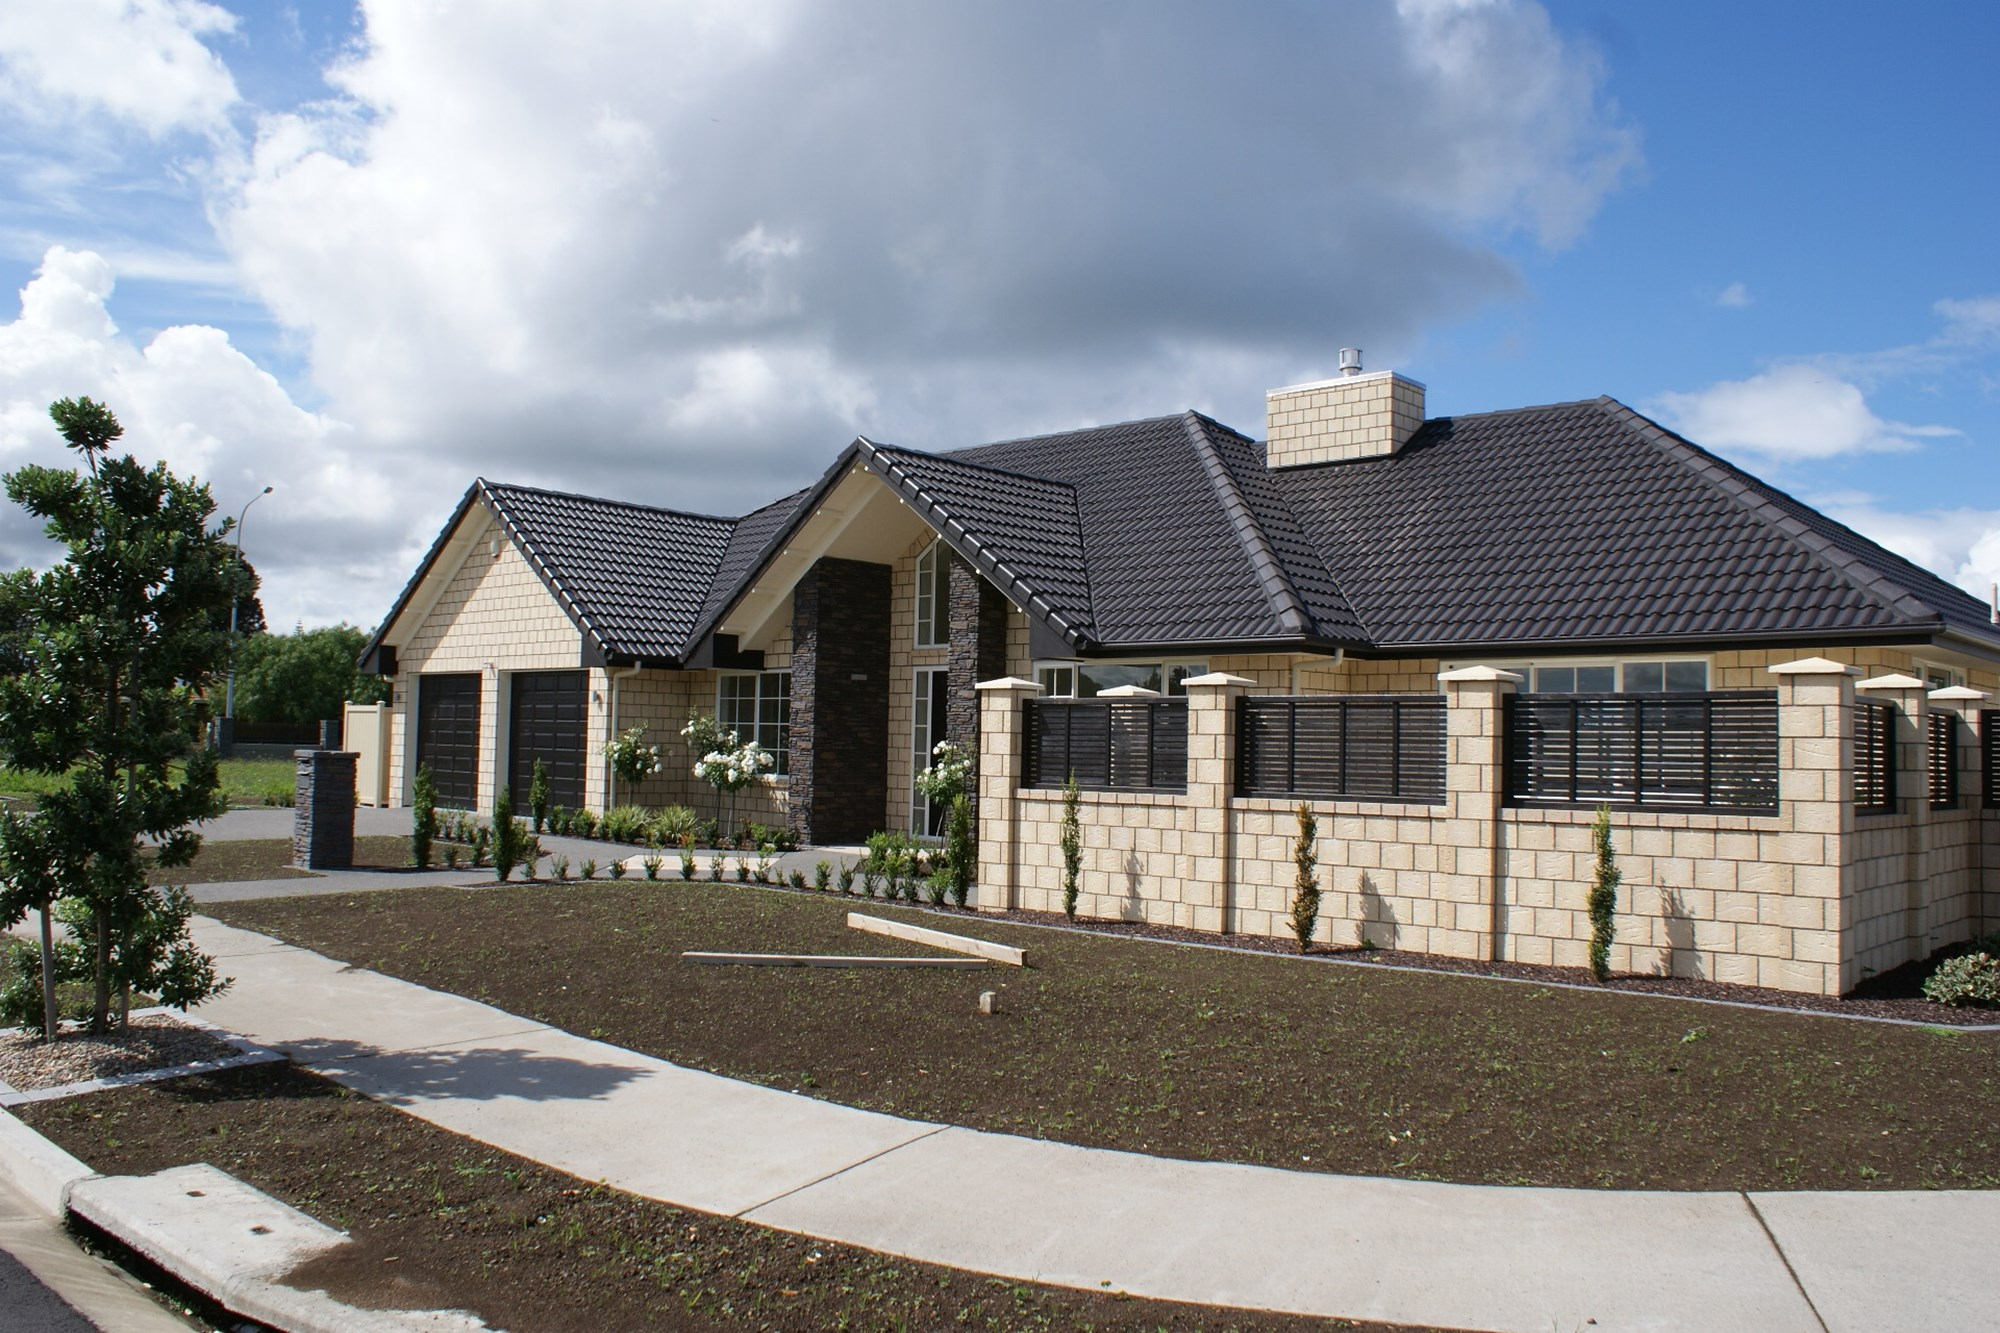 Architecturally Designed - Papakura - Papakura (5)